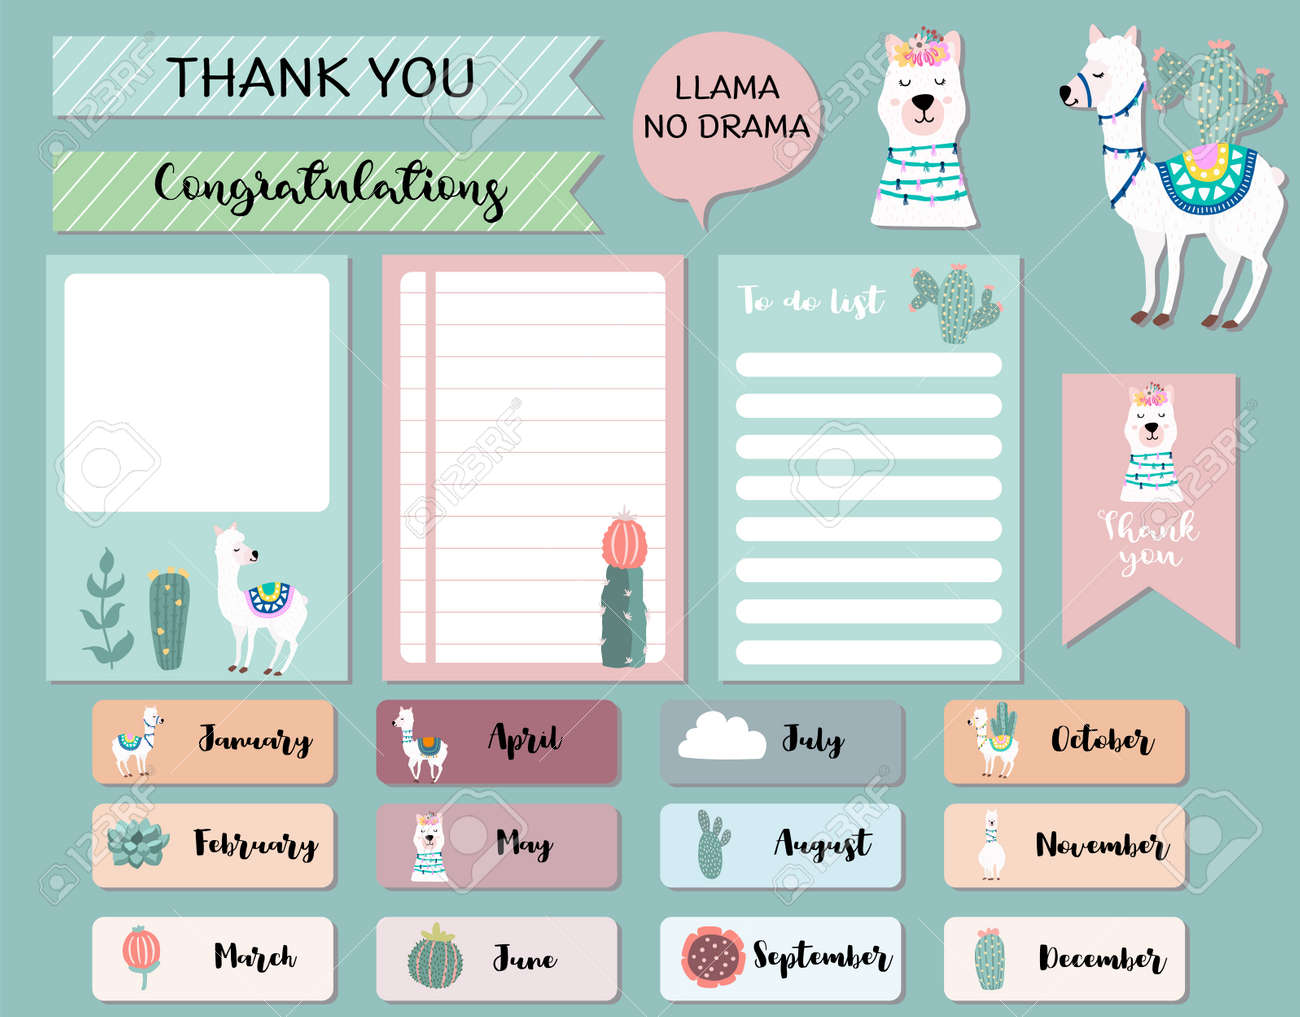 Pastel monthly calendar planner with llama,alpaca,cactus.Can use for printable,scrapbook,diary - 156901321